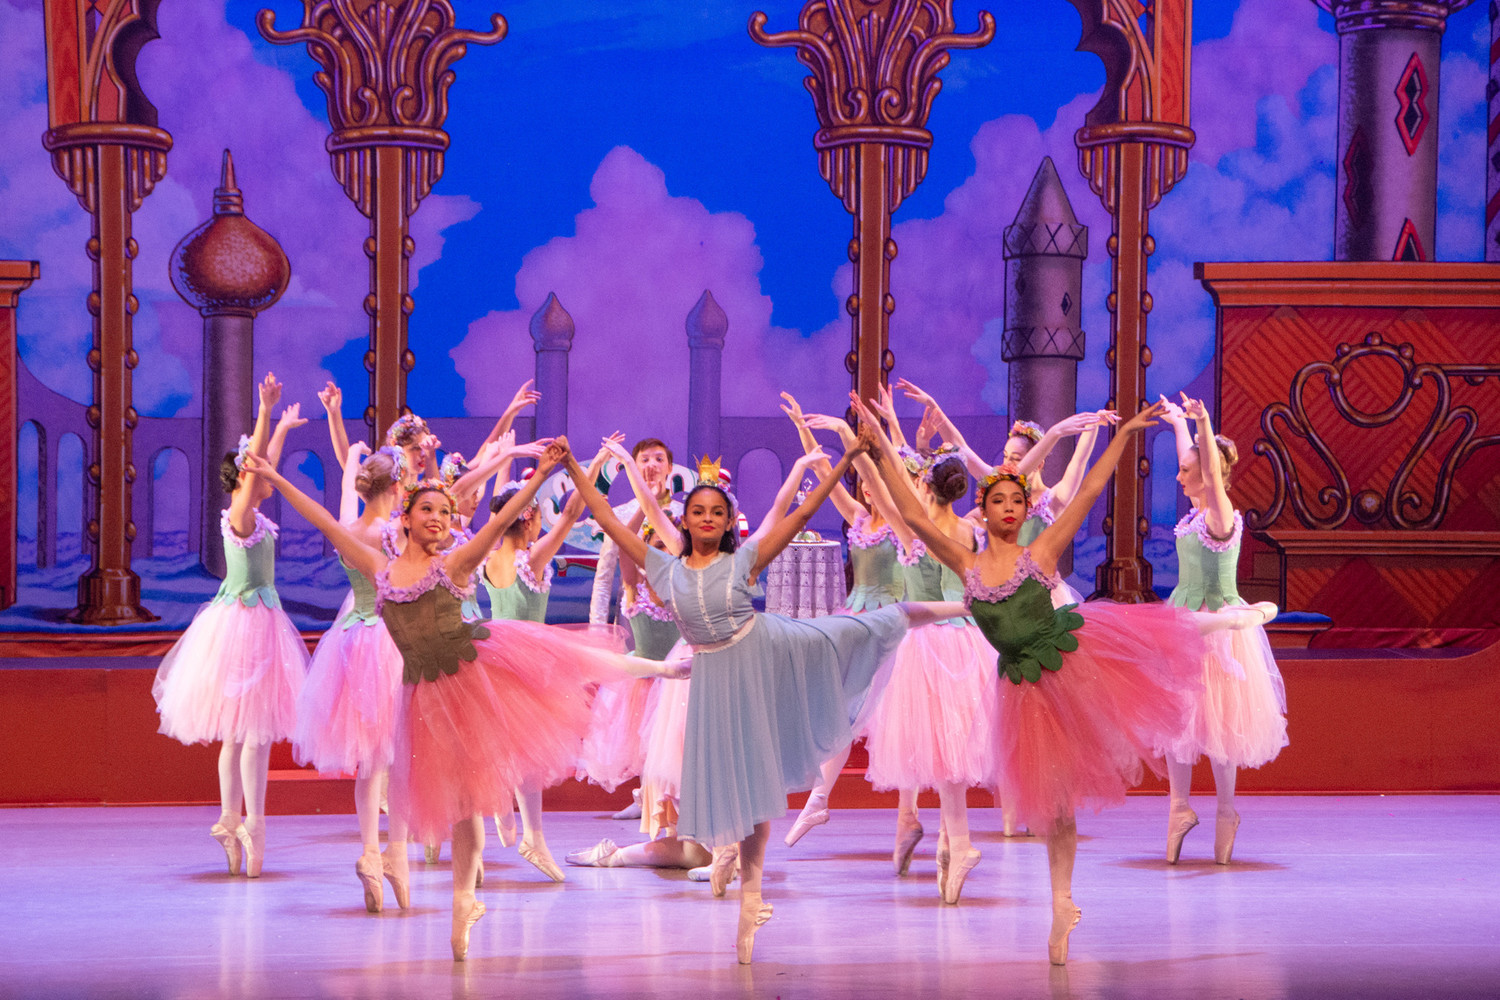 BWW Review: Los Angeles Youth Ballet's NUTCRACKER Scores With A Delightful, Whimsical And Polished Presentation At The Alex Theatre